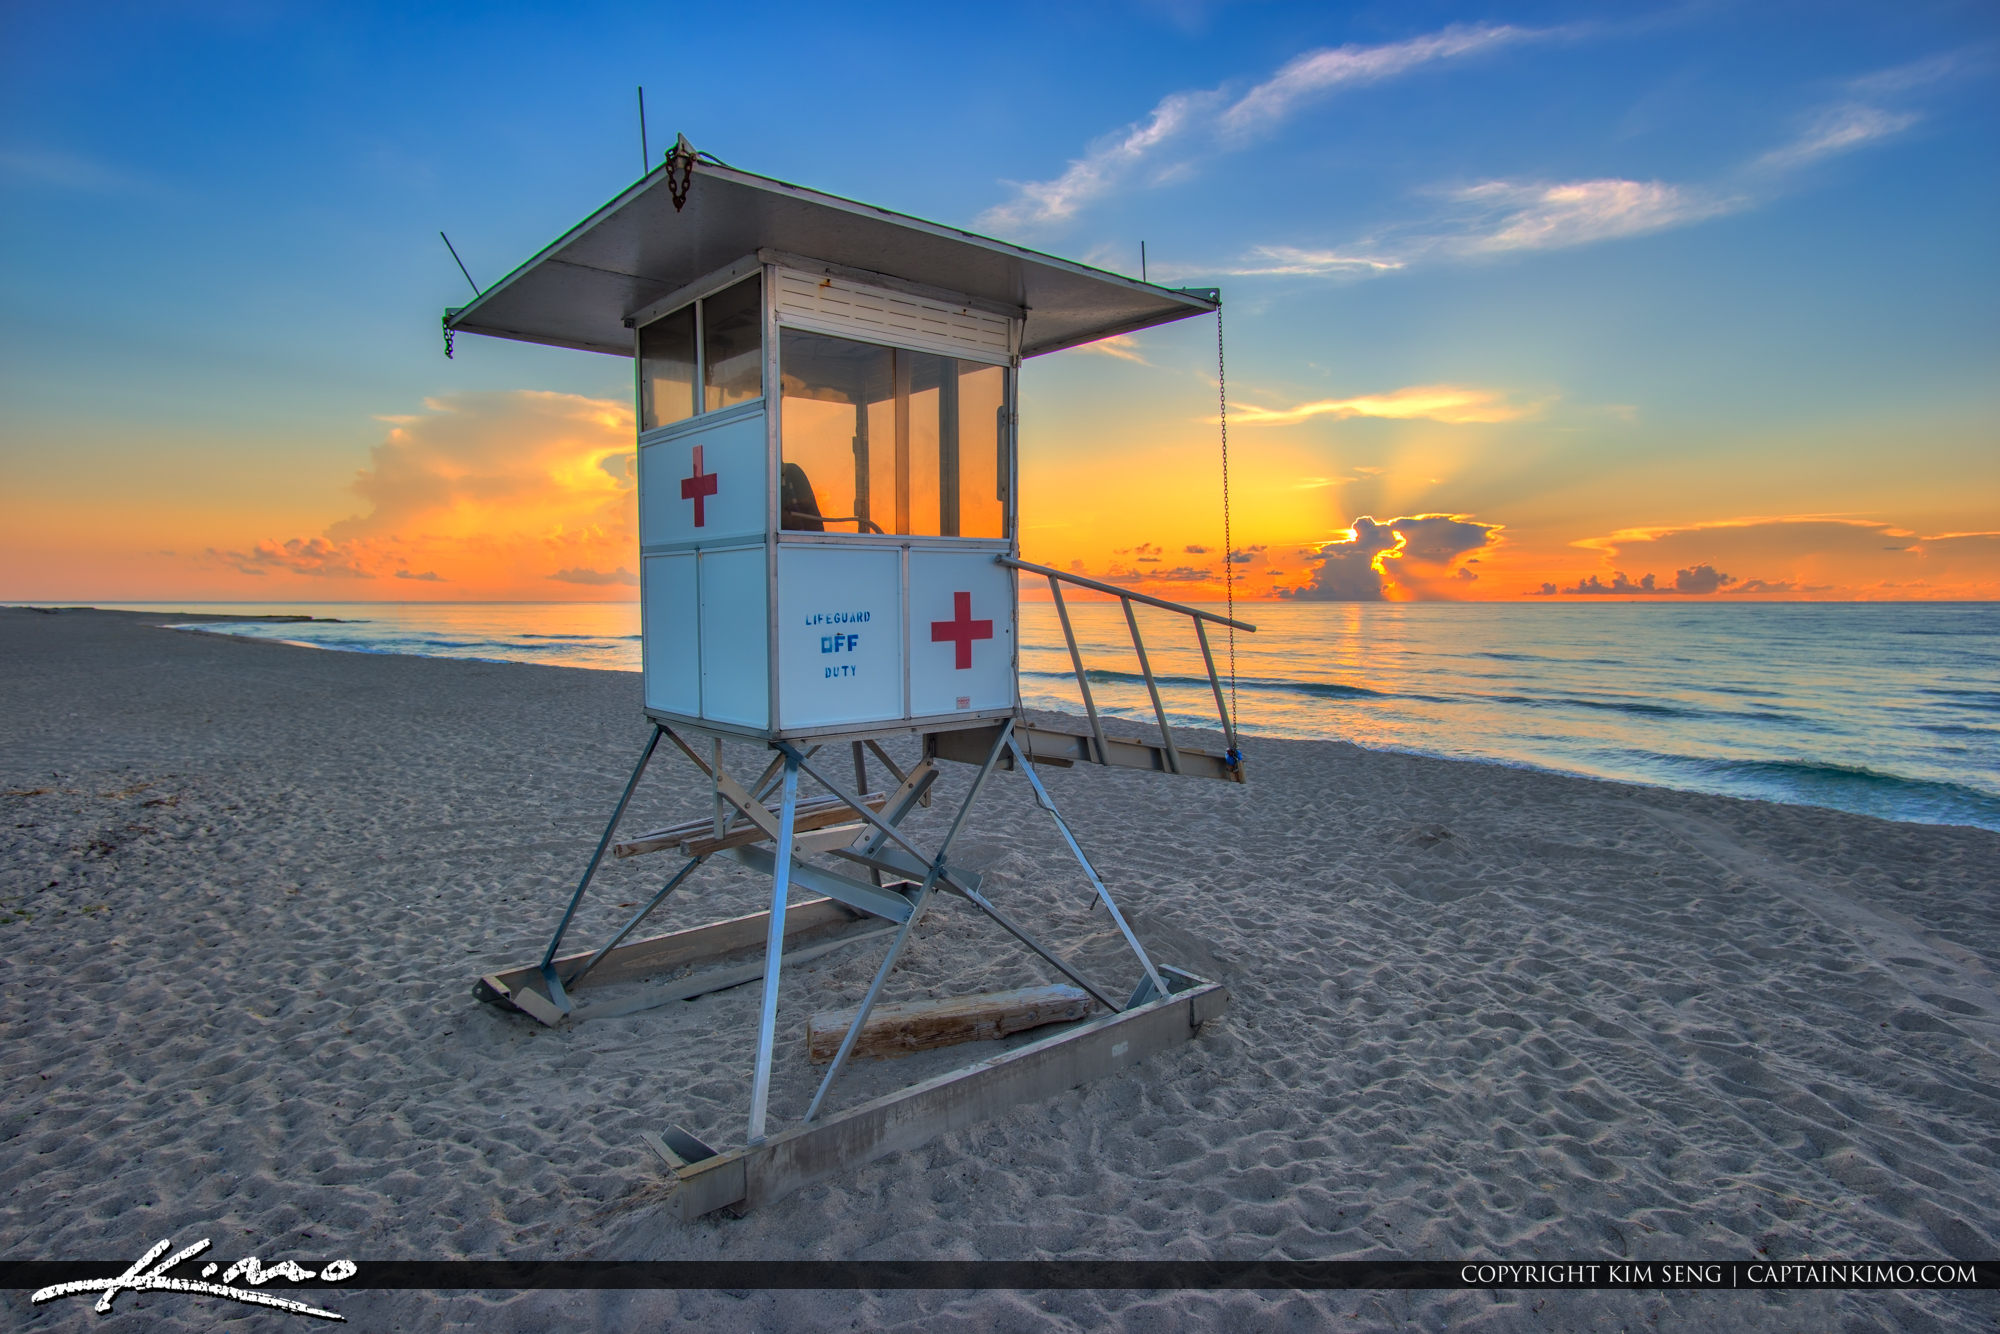 Lifeguard tower photo